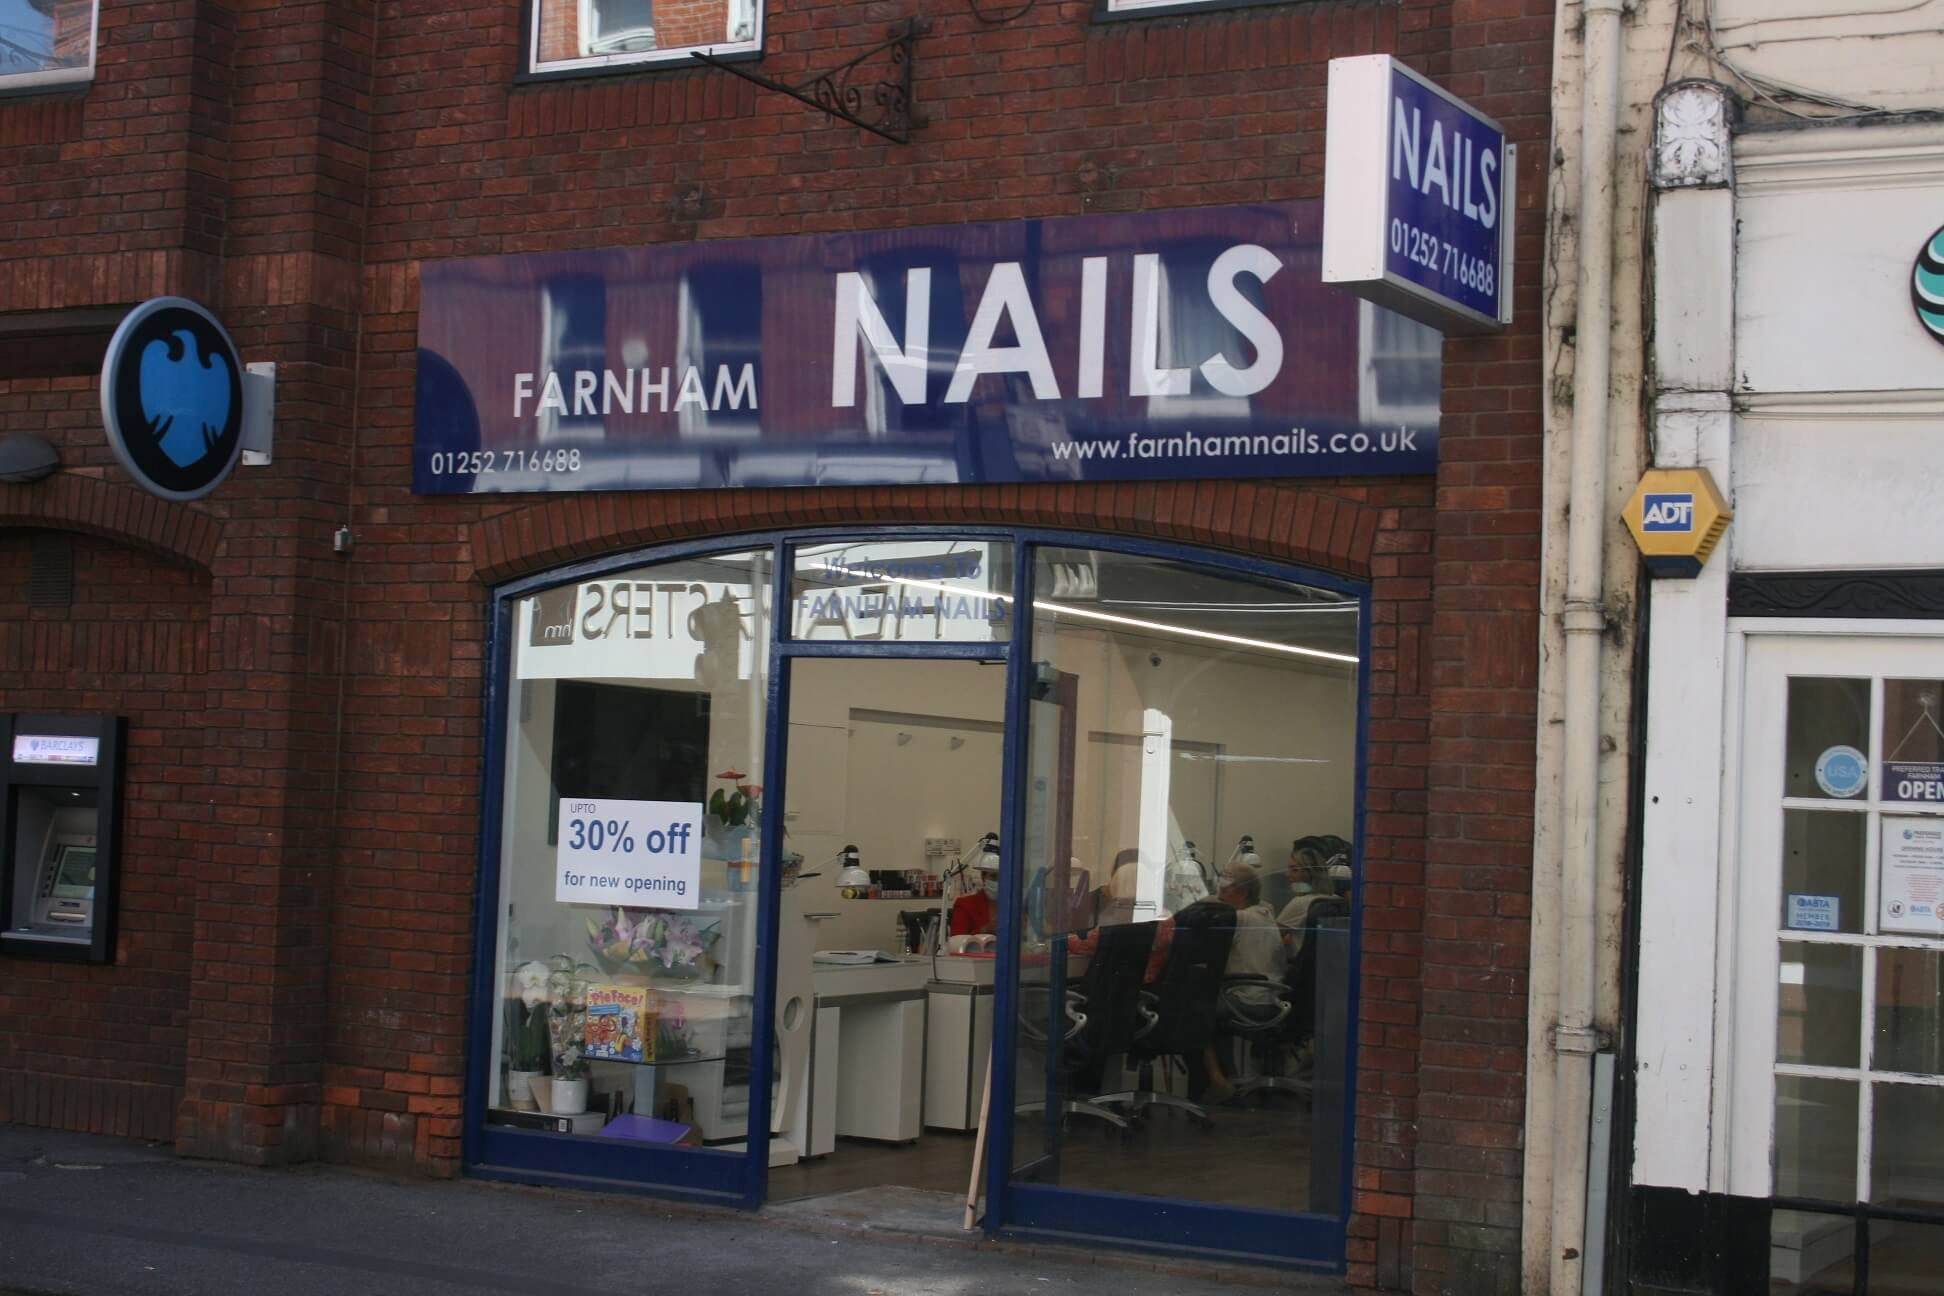 Curchod & Co nails retail transaction in Farnham